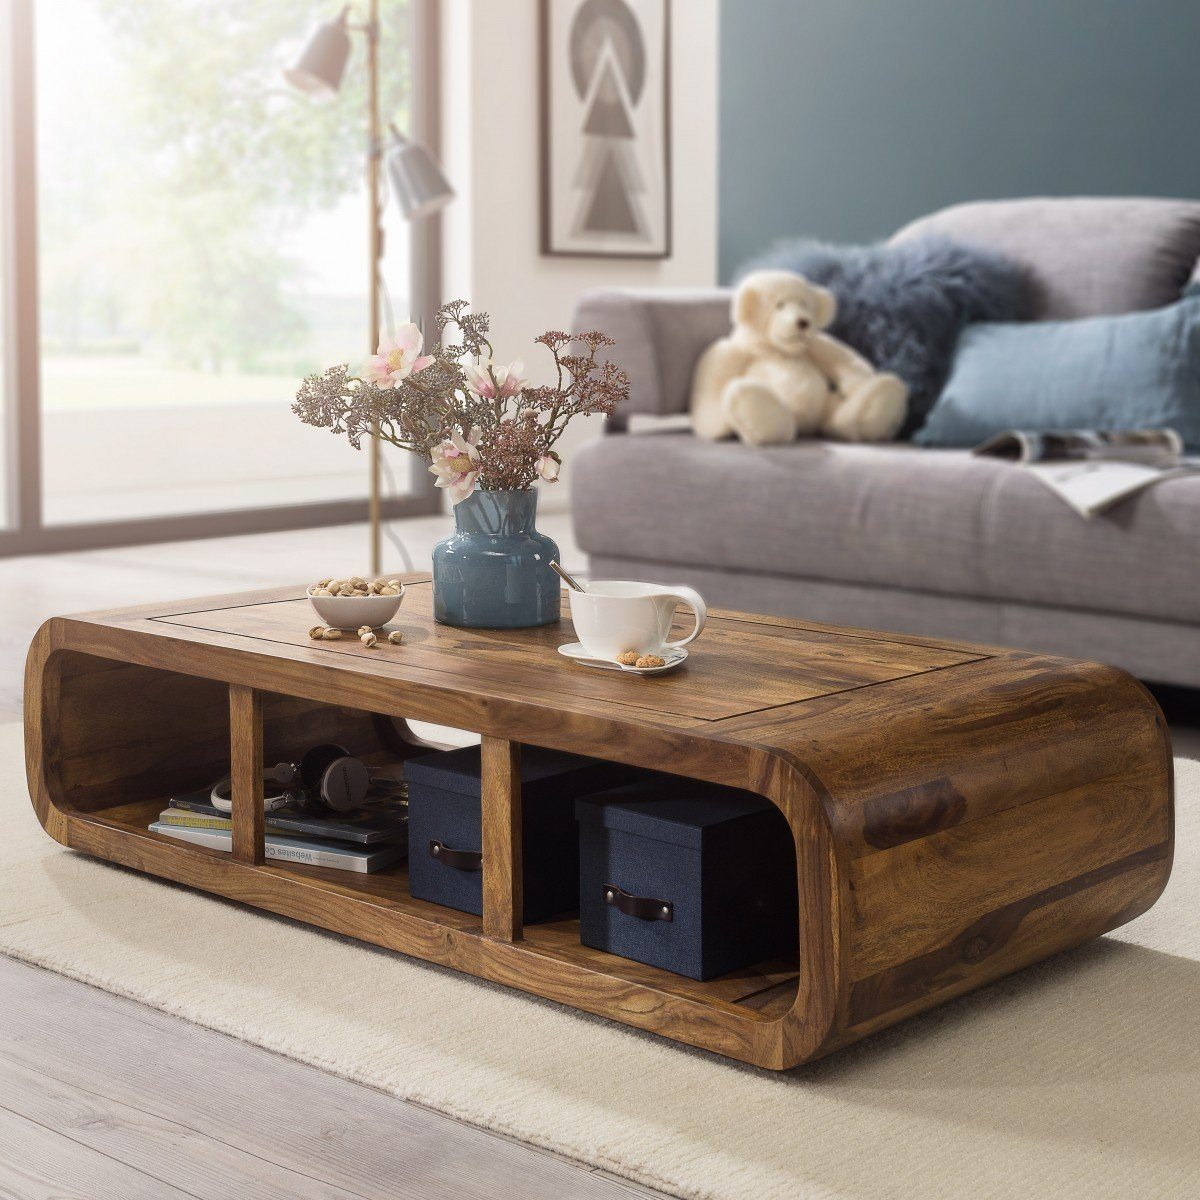 Wooden Coffee Table.Solid Wood Curved Coffee Table